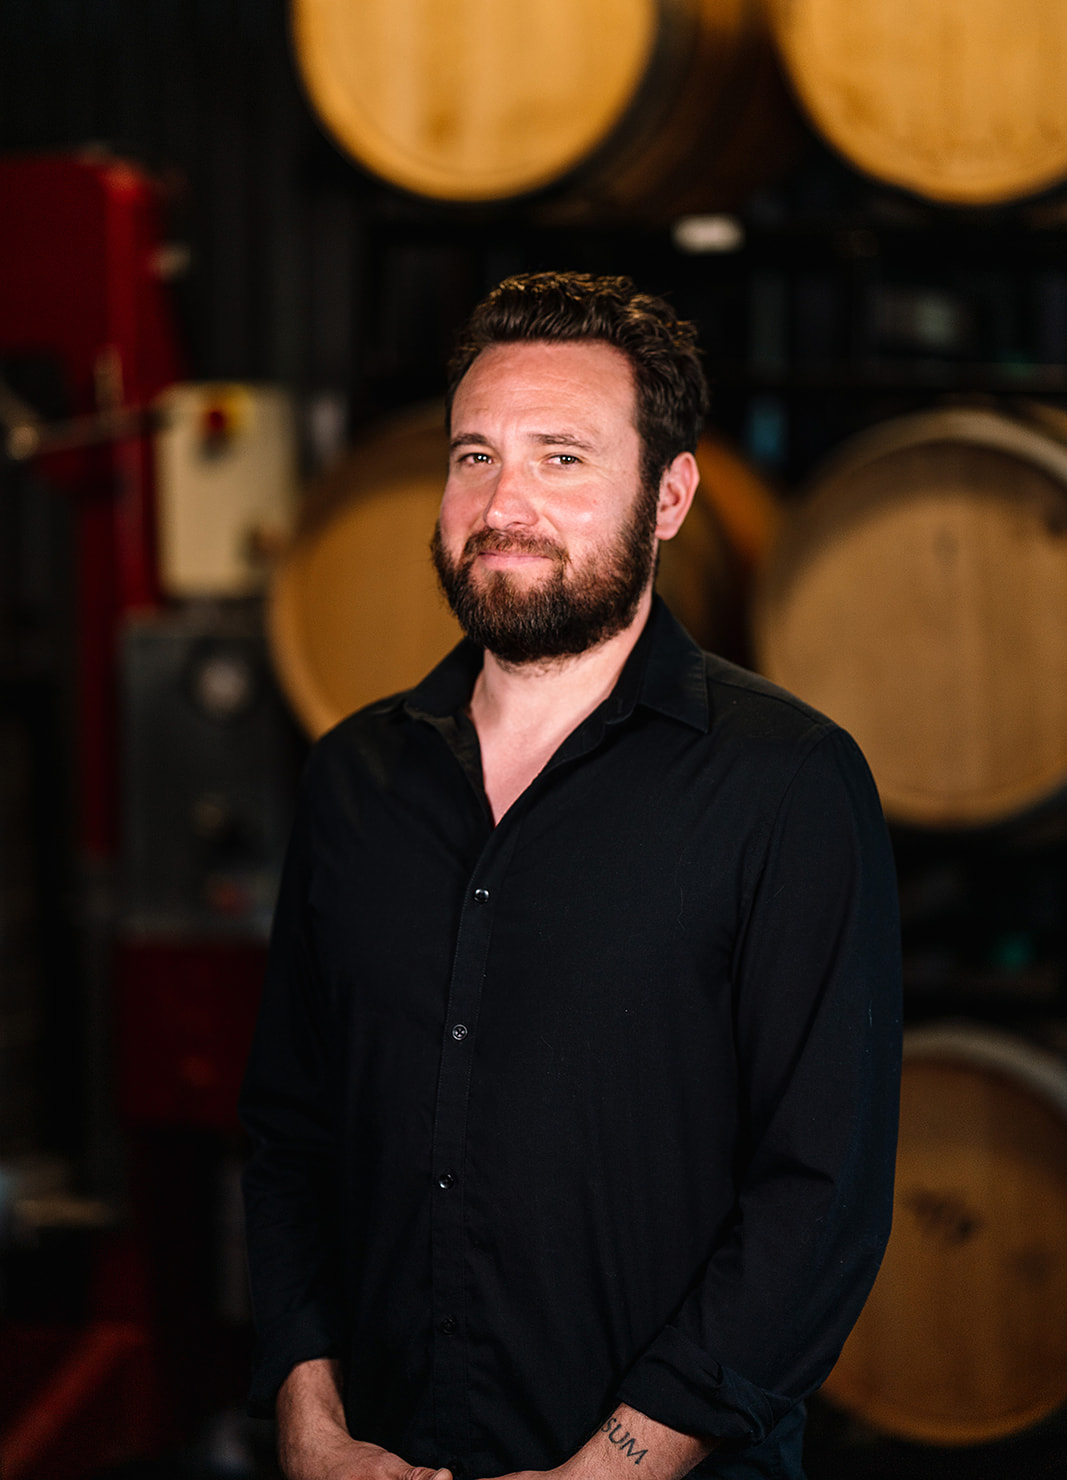 Carboy Head Winemaker, Tyzok Wharton, standing in front of wine barrels